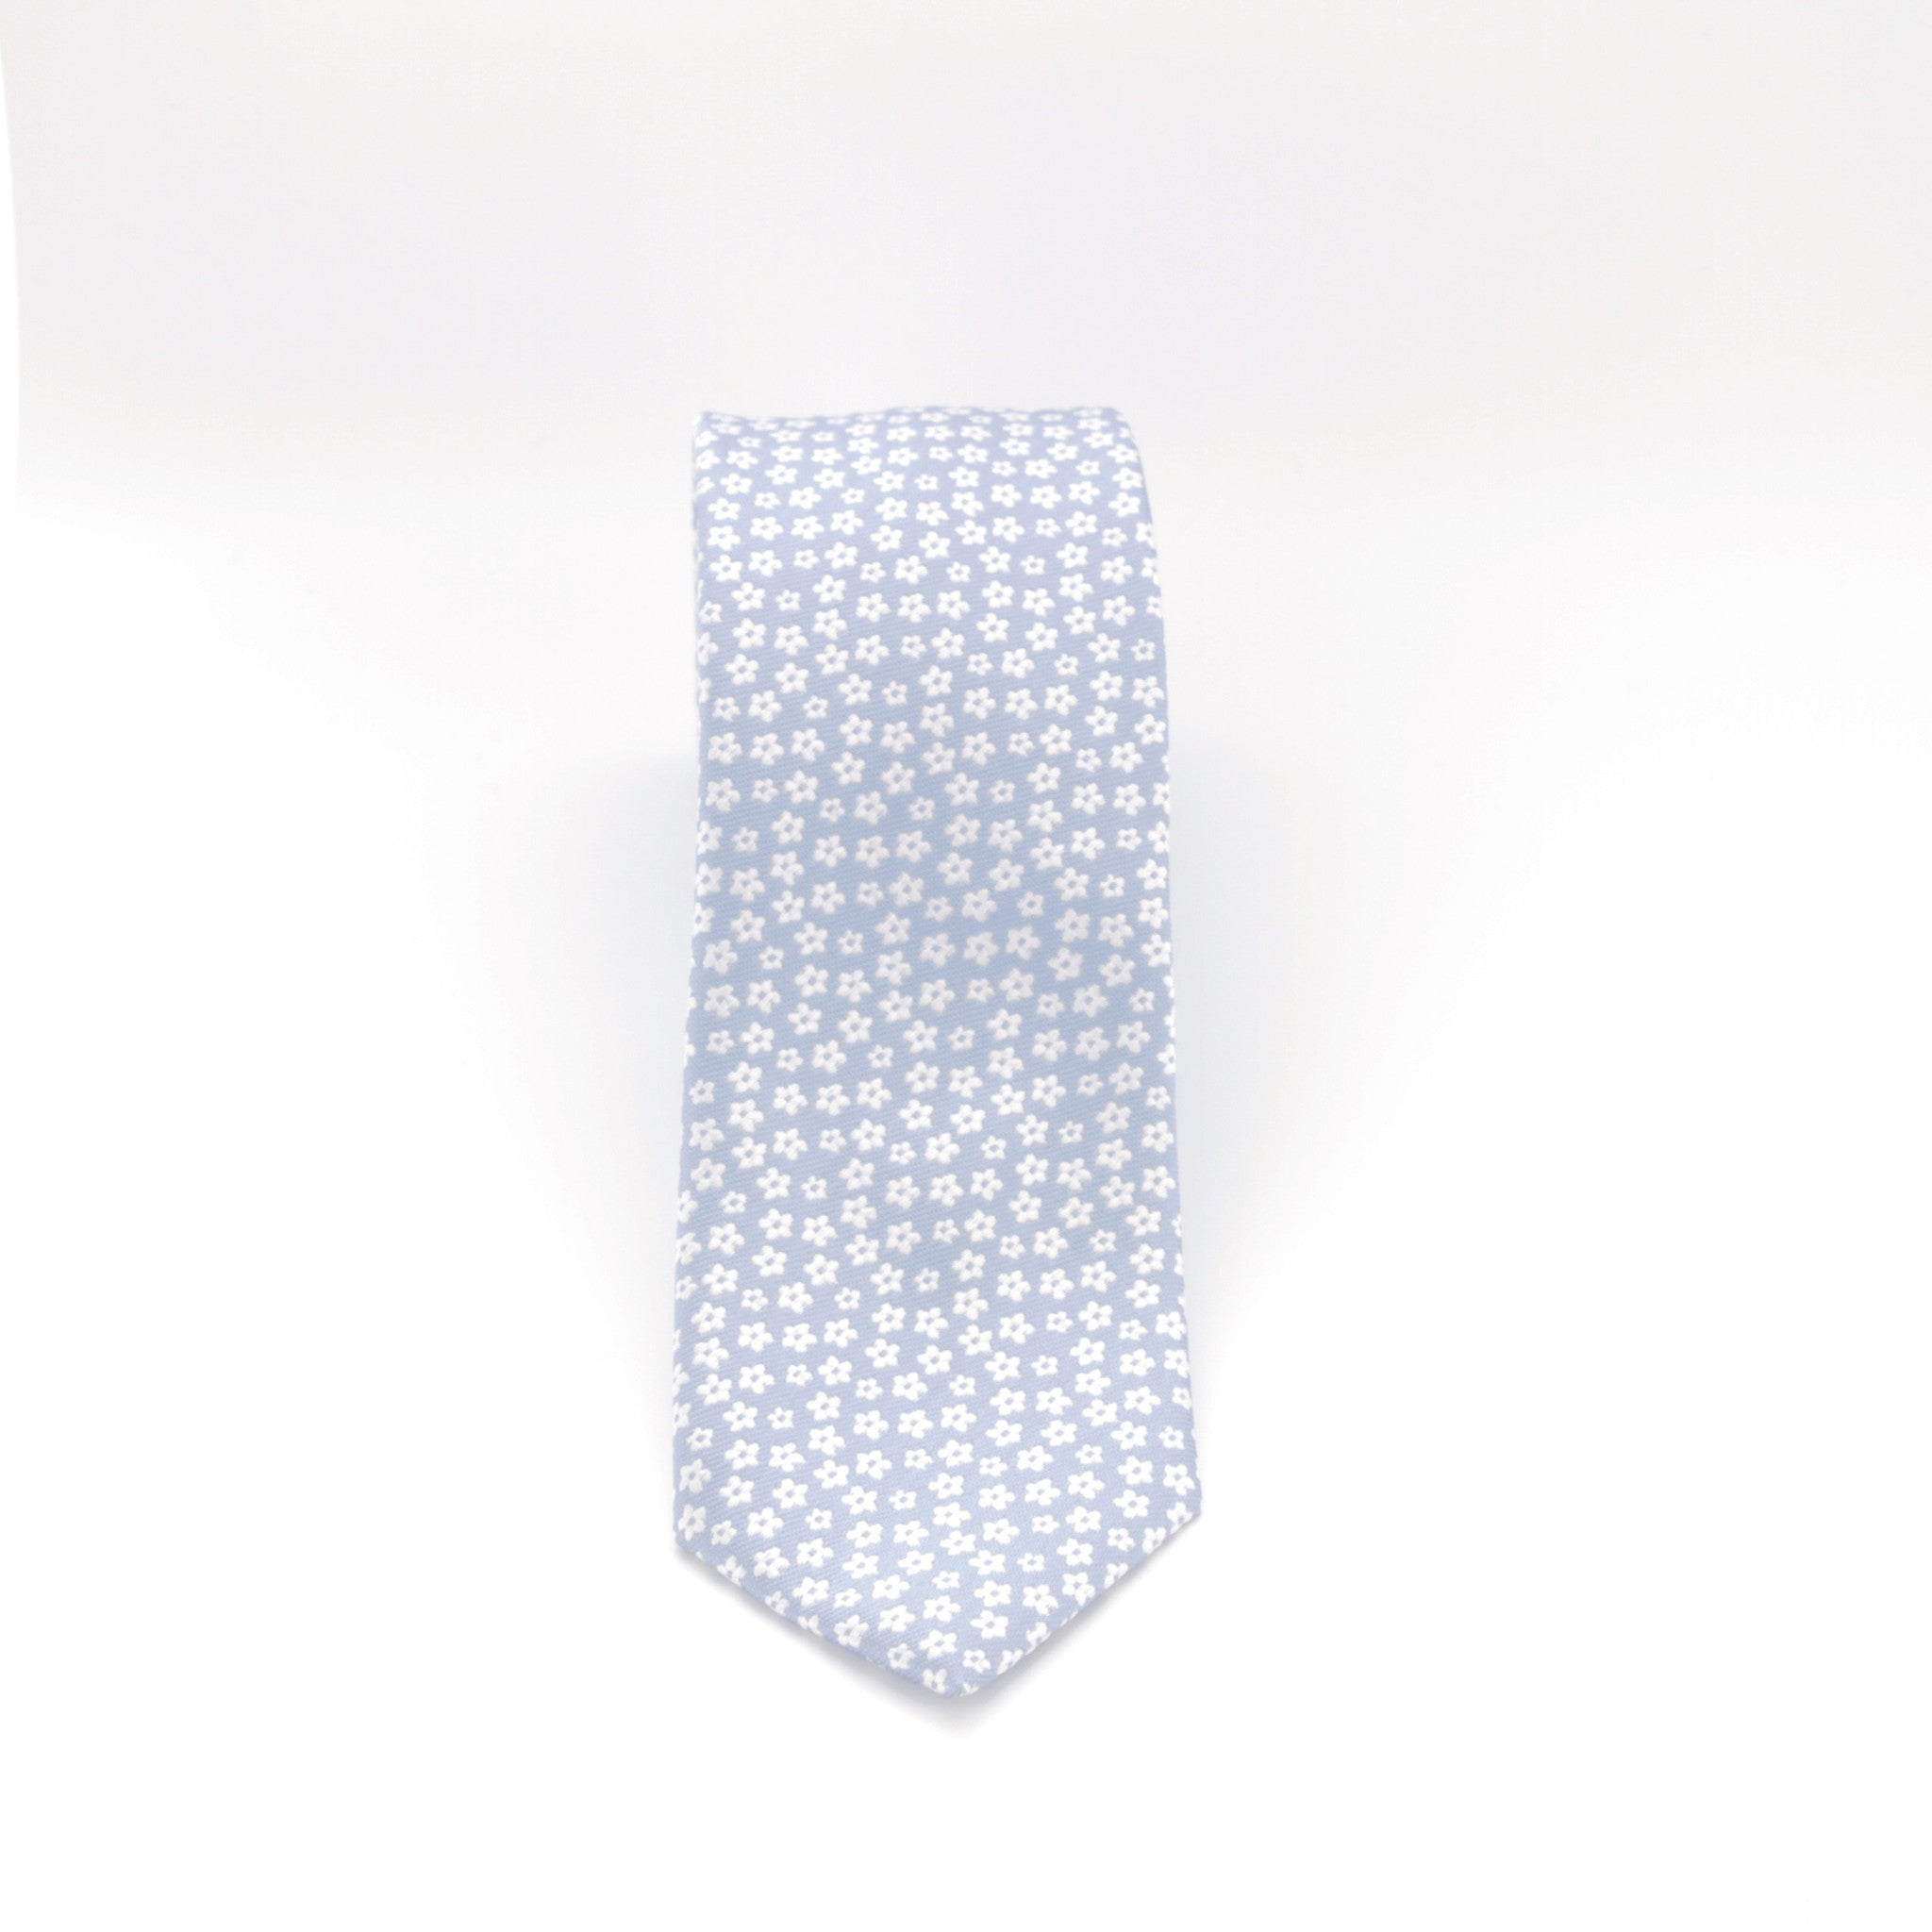 Light Blue with White Flowers Long Tie